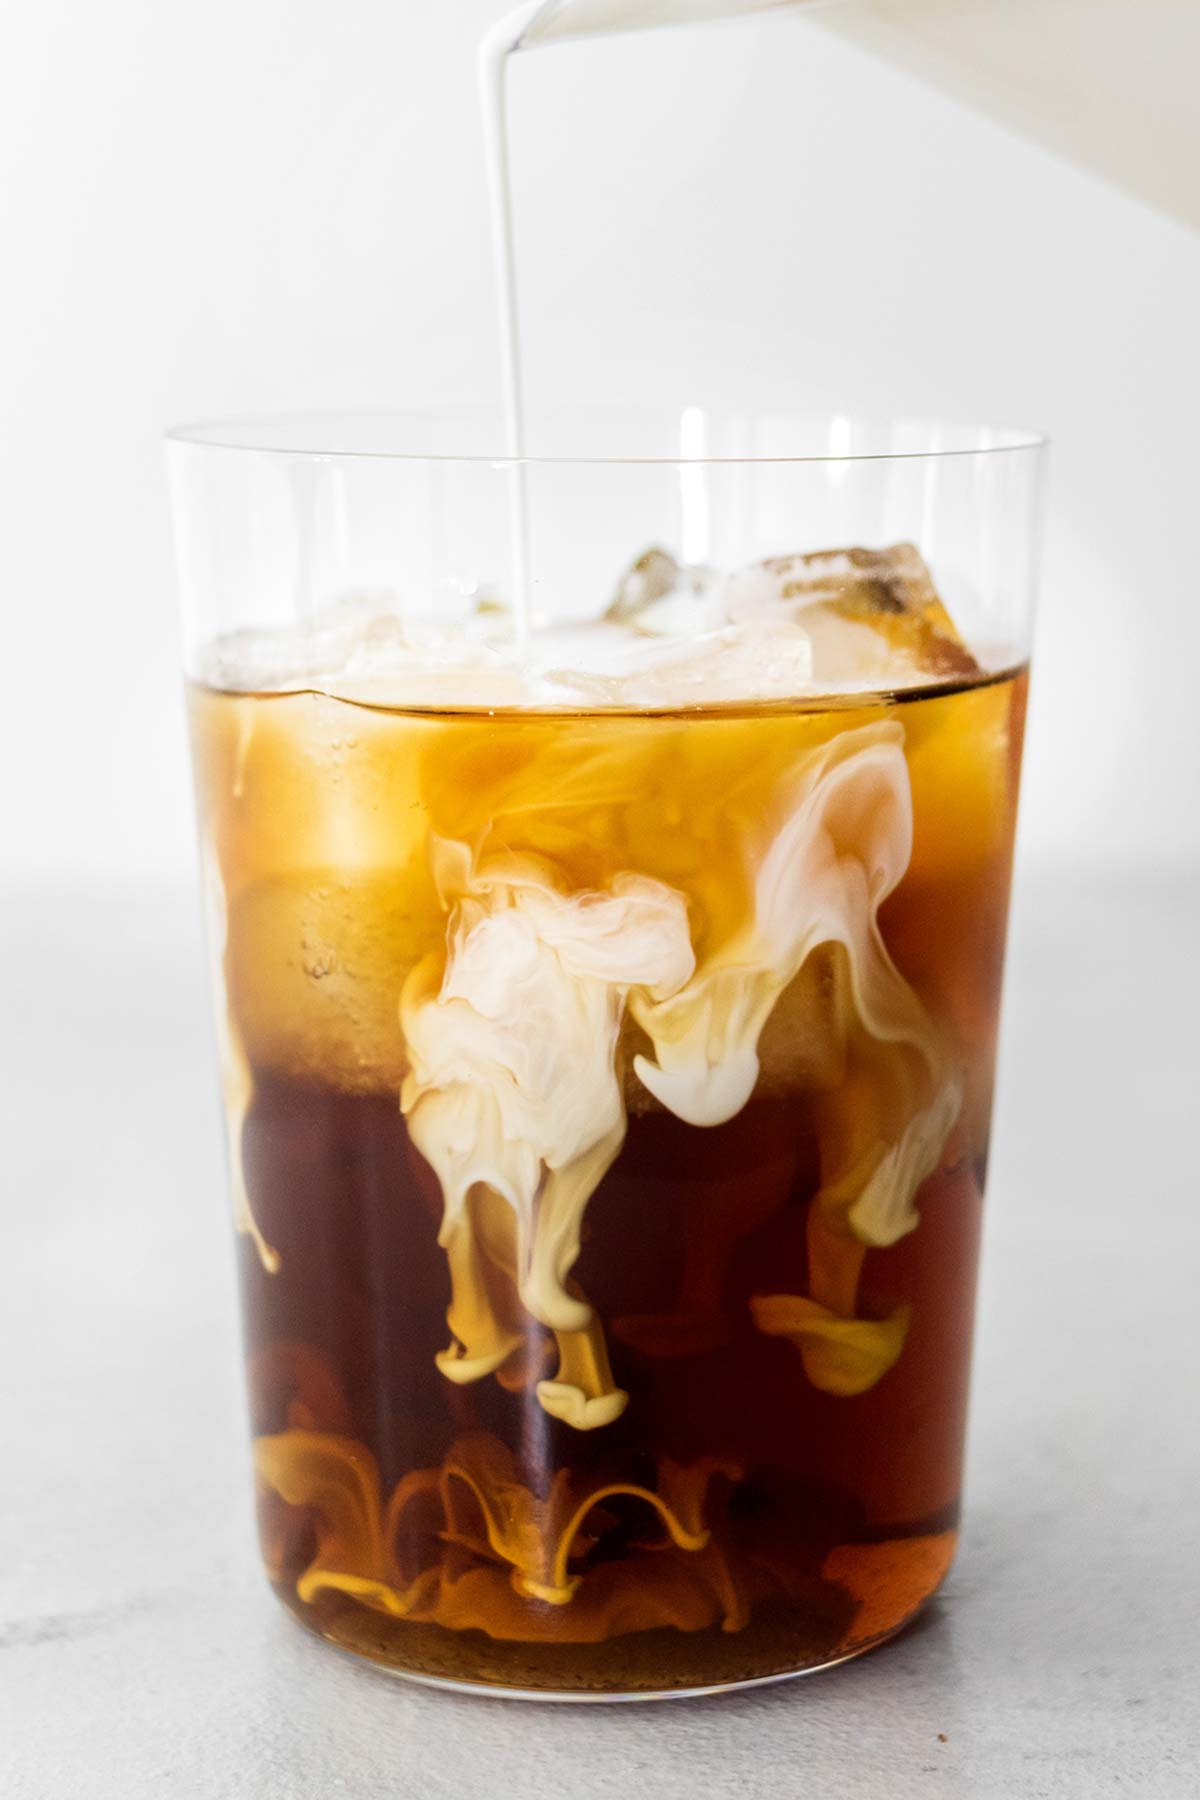 Pouring Sweet Cream into a cup of cold brew coffee with ice.